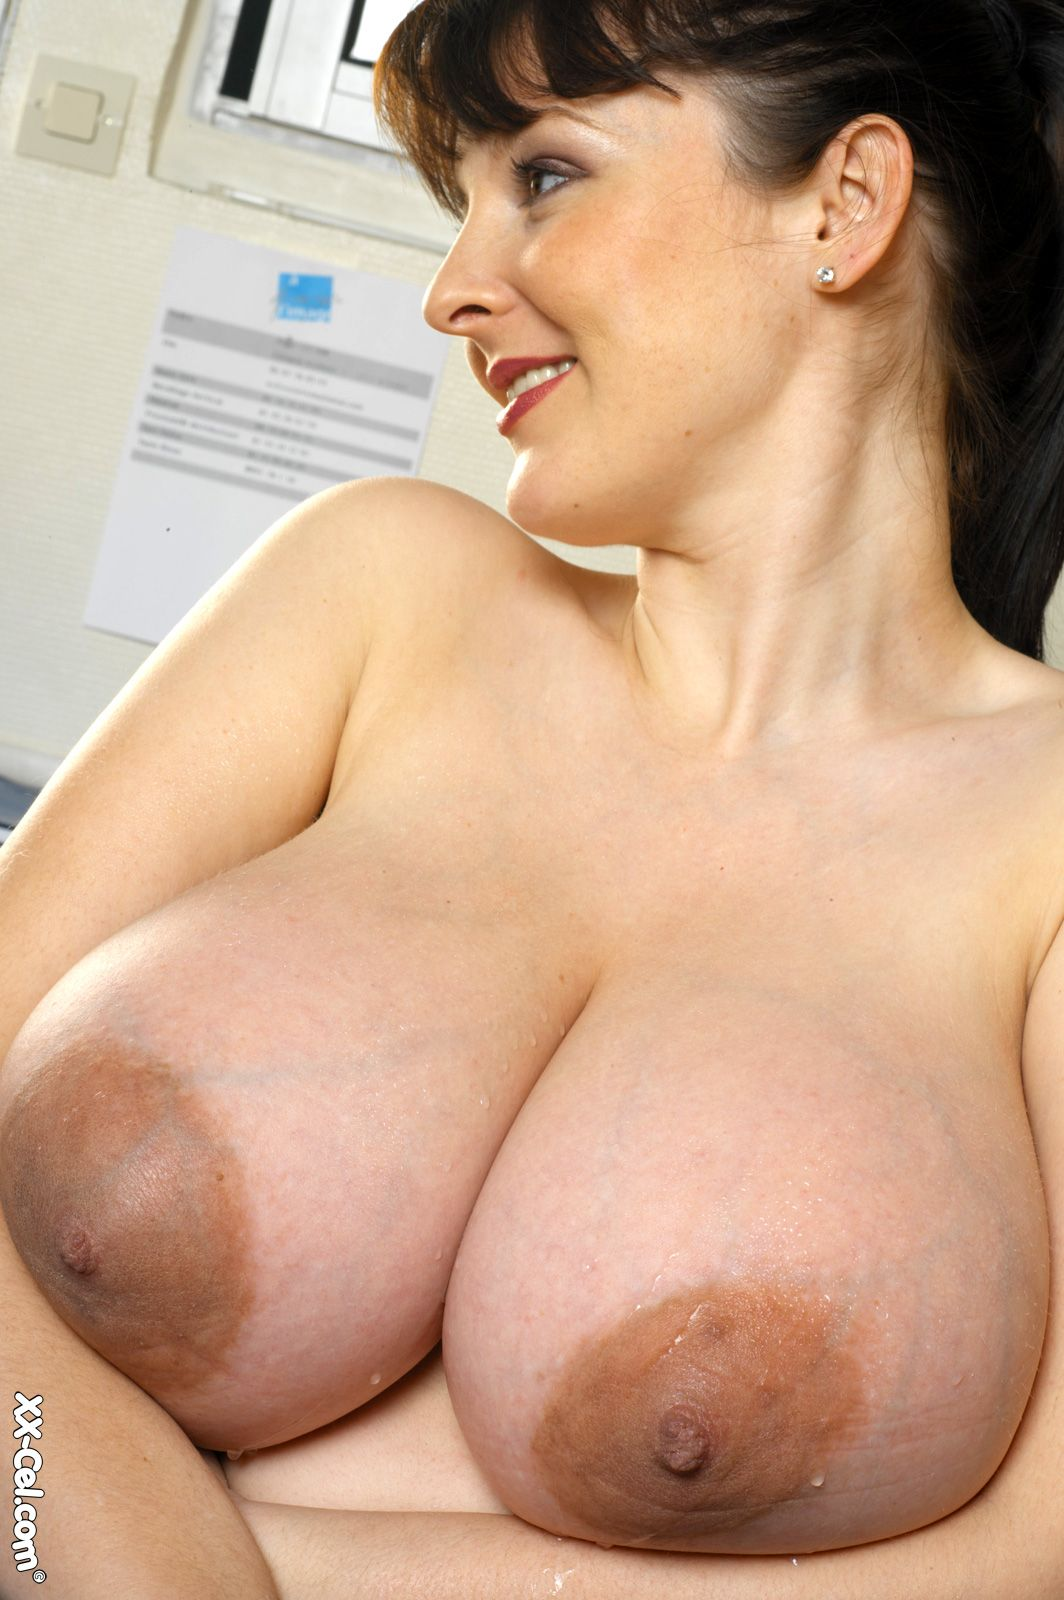 huge areolas tits videos : TIT-BIT : Big tits, huge